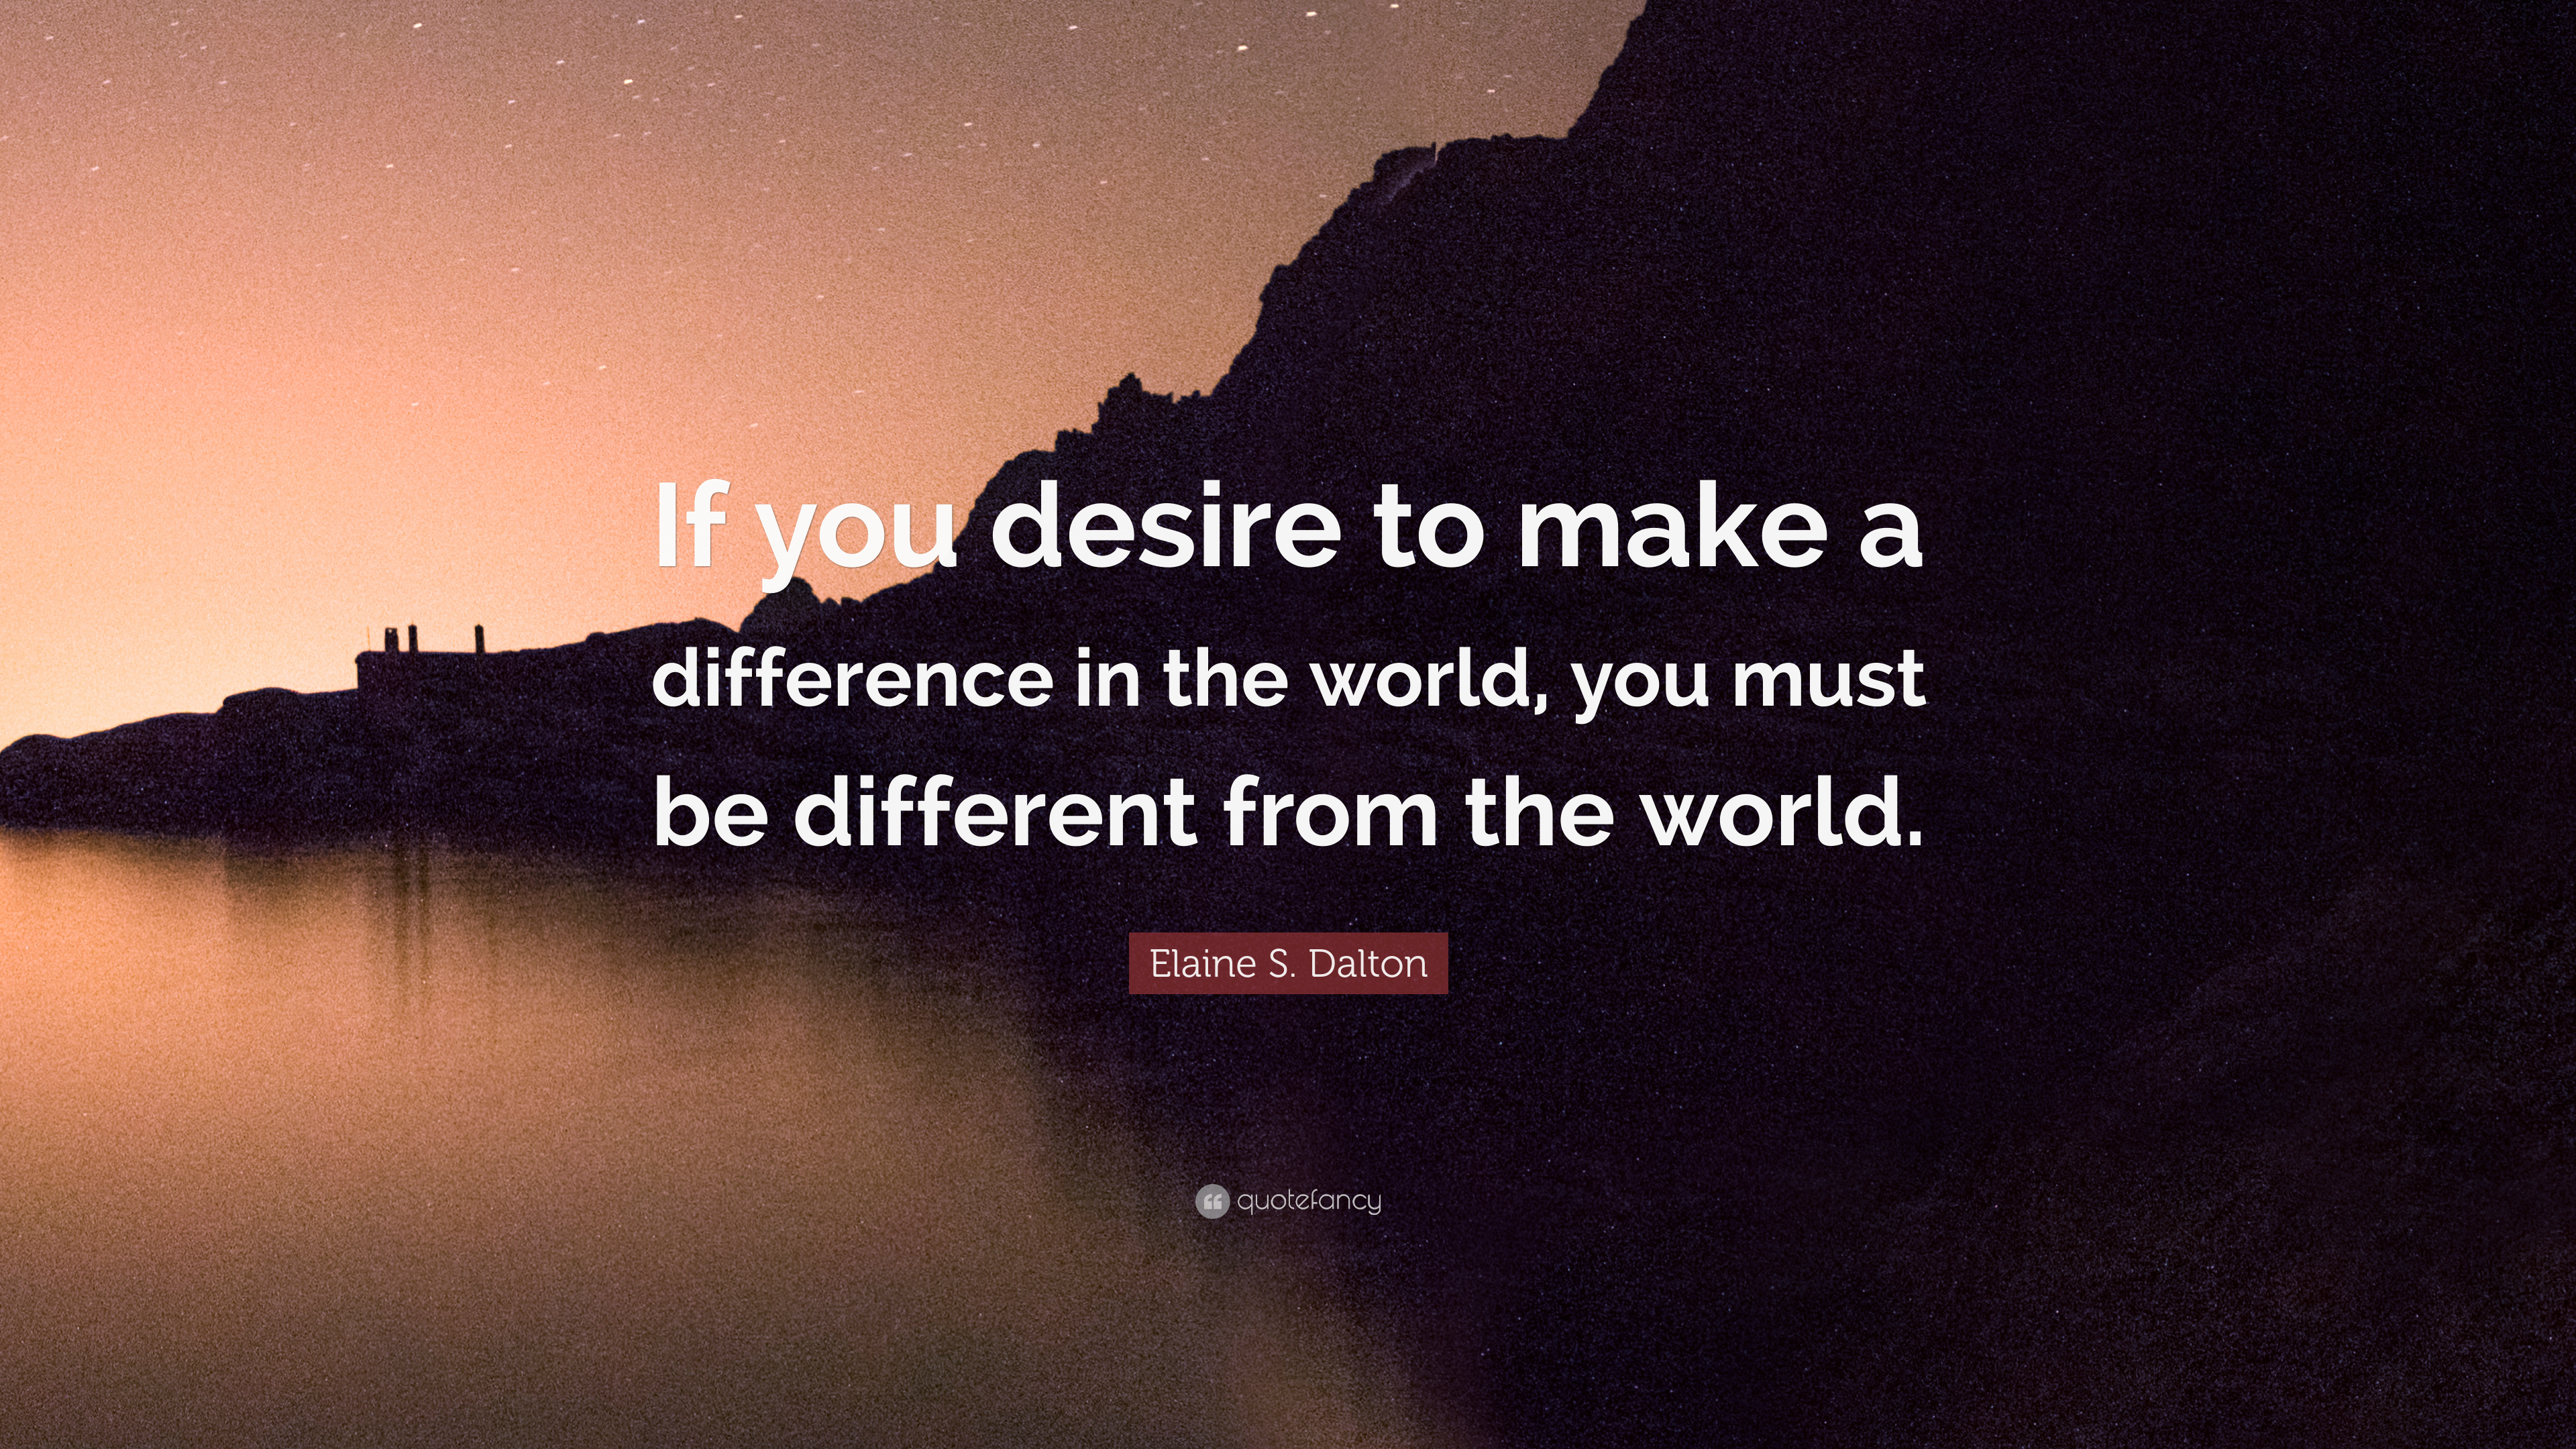 Elaine S Dalton Quote If You Desire To Make A Difference In The